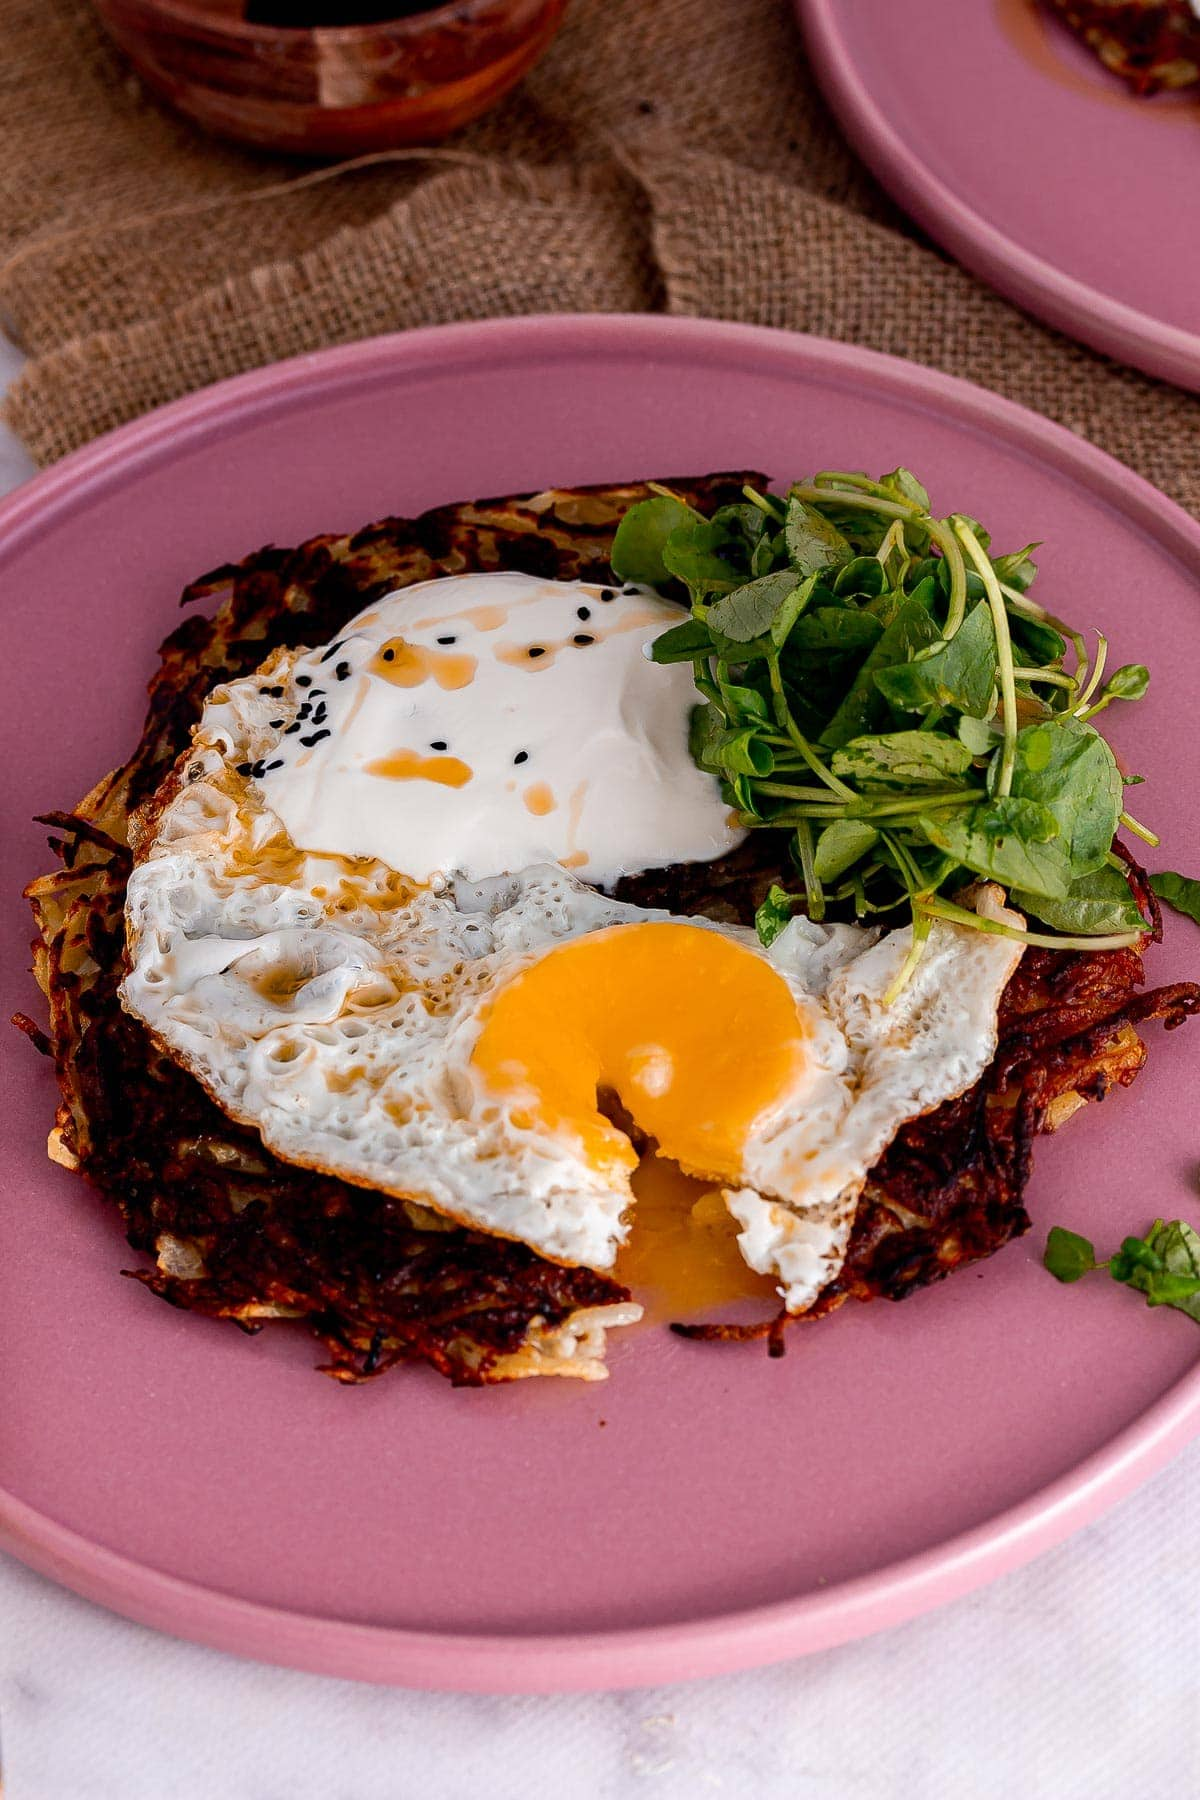 Pink plate of potato cake with a fried egg cut open